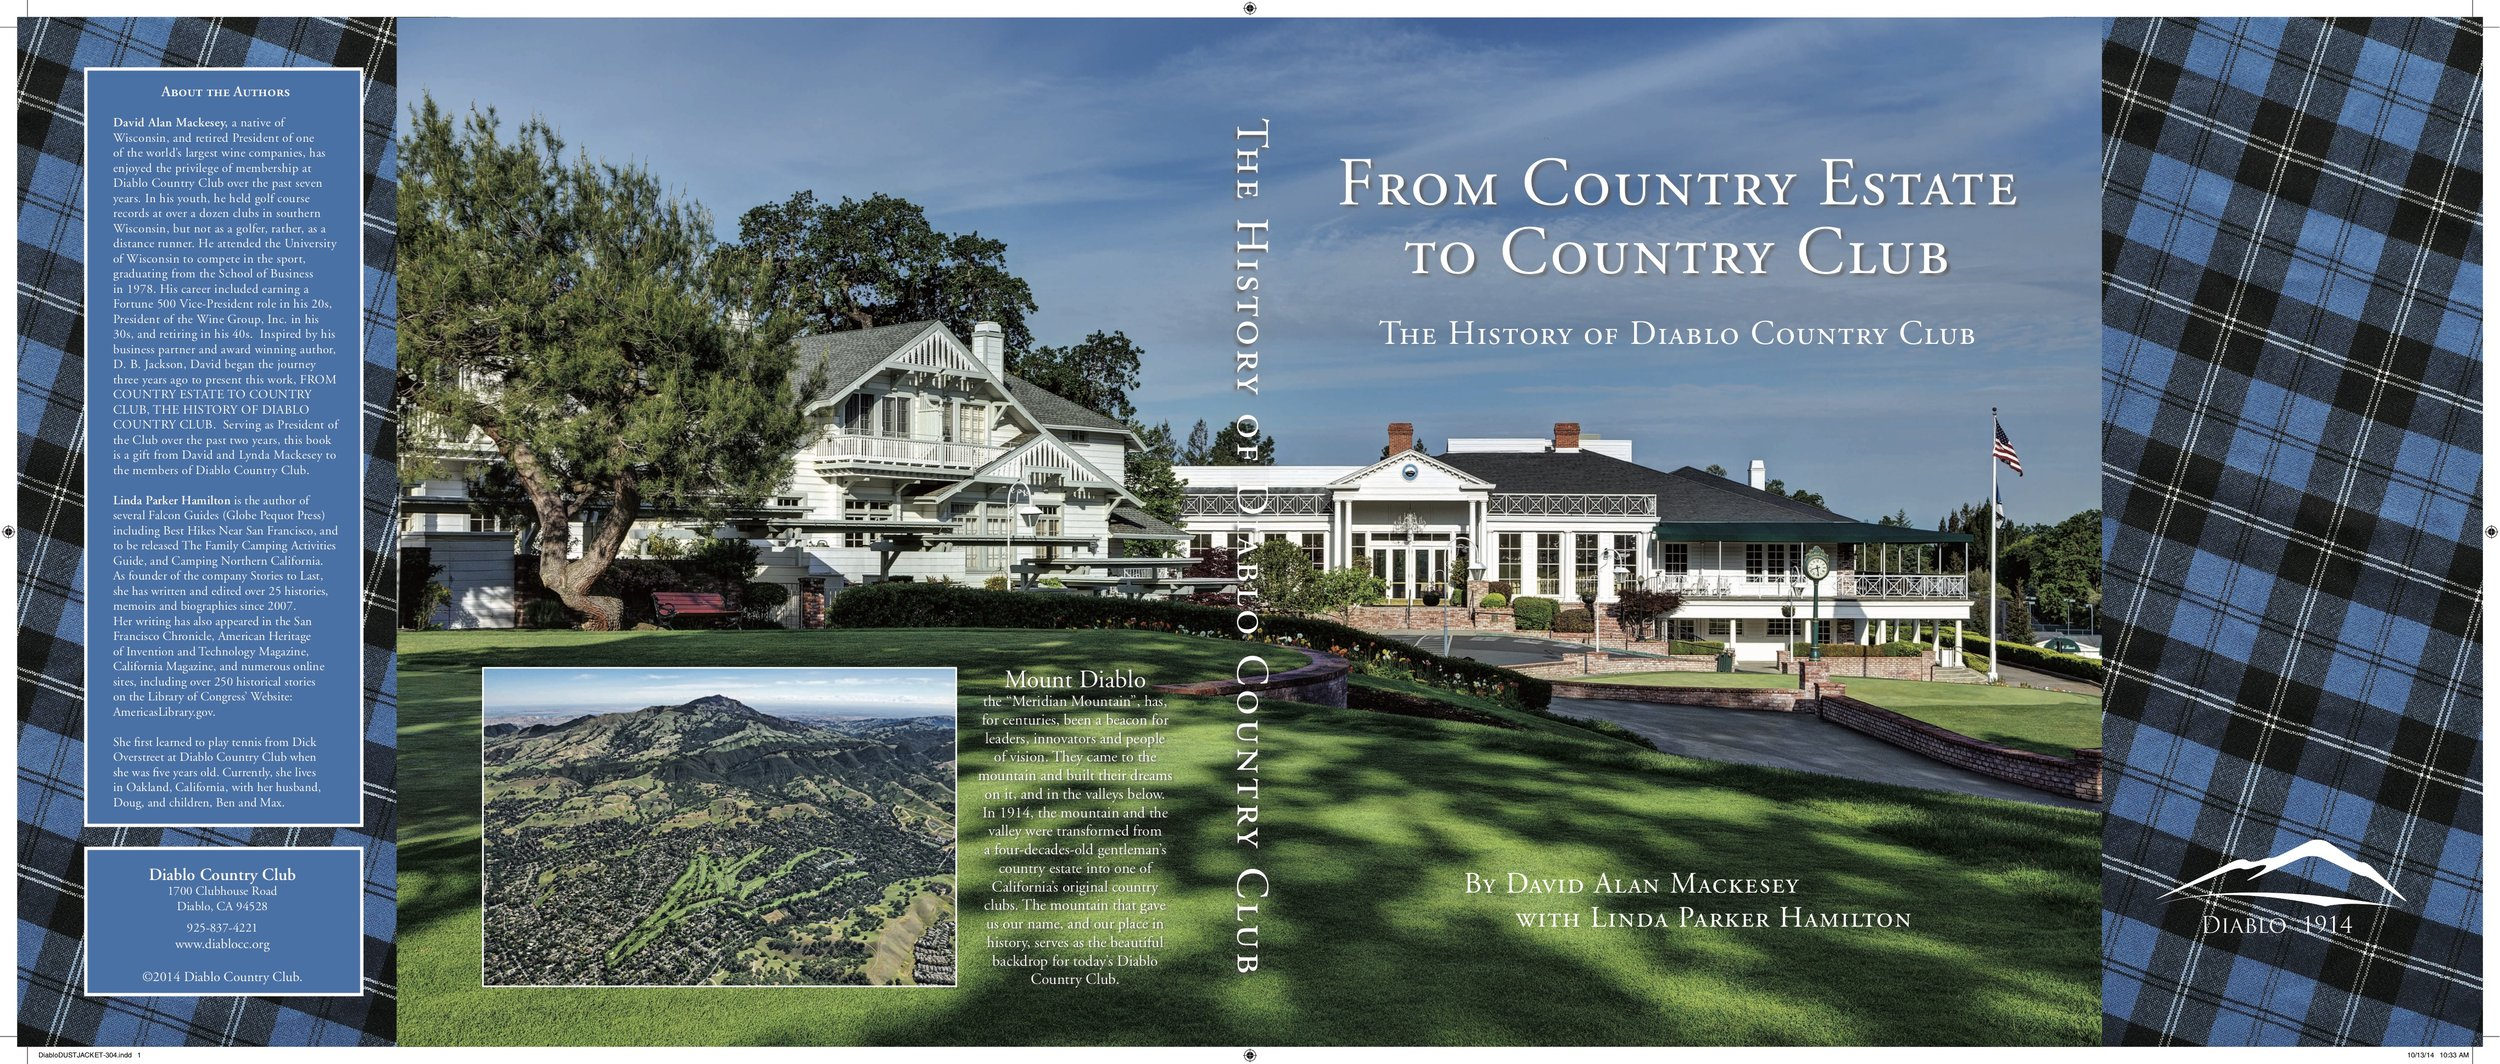 What an amazing history! The Club's origins tie directly to the Big Four railroad tycoons, early California history and even the origins of golf in Scotland! Working with my co-author and the organization was a great experience.